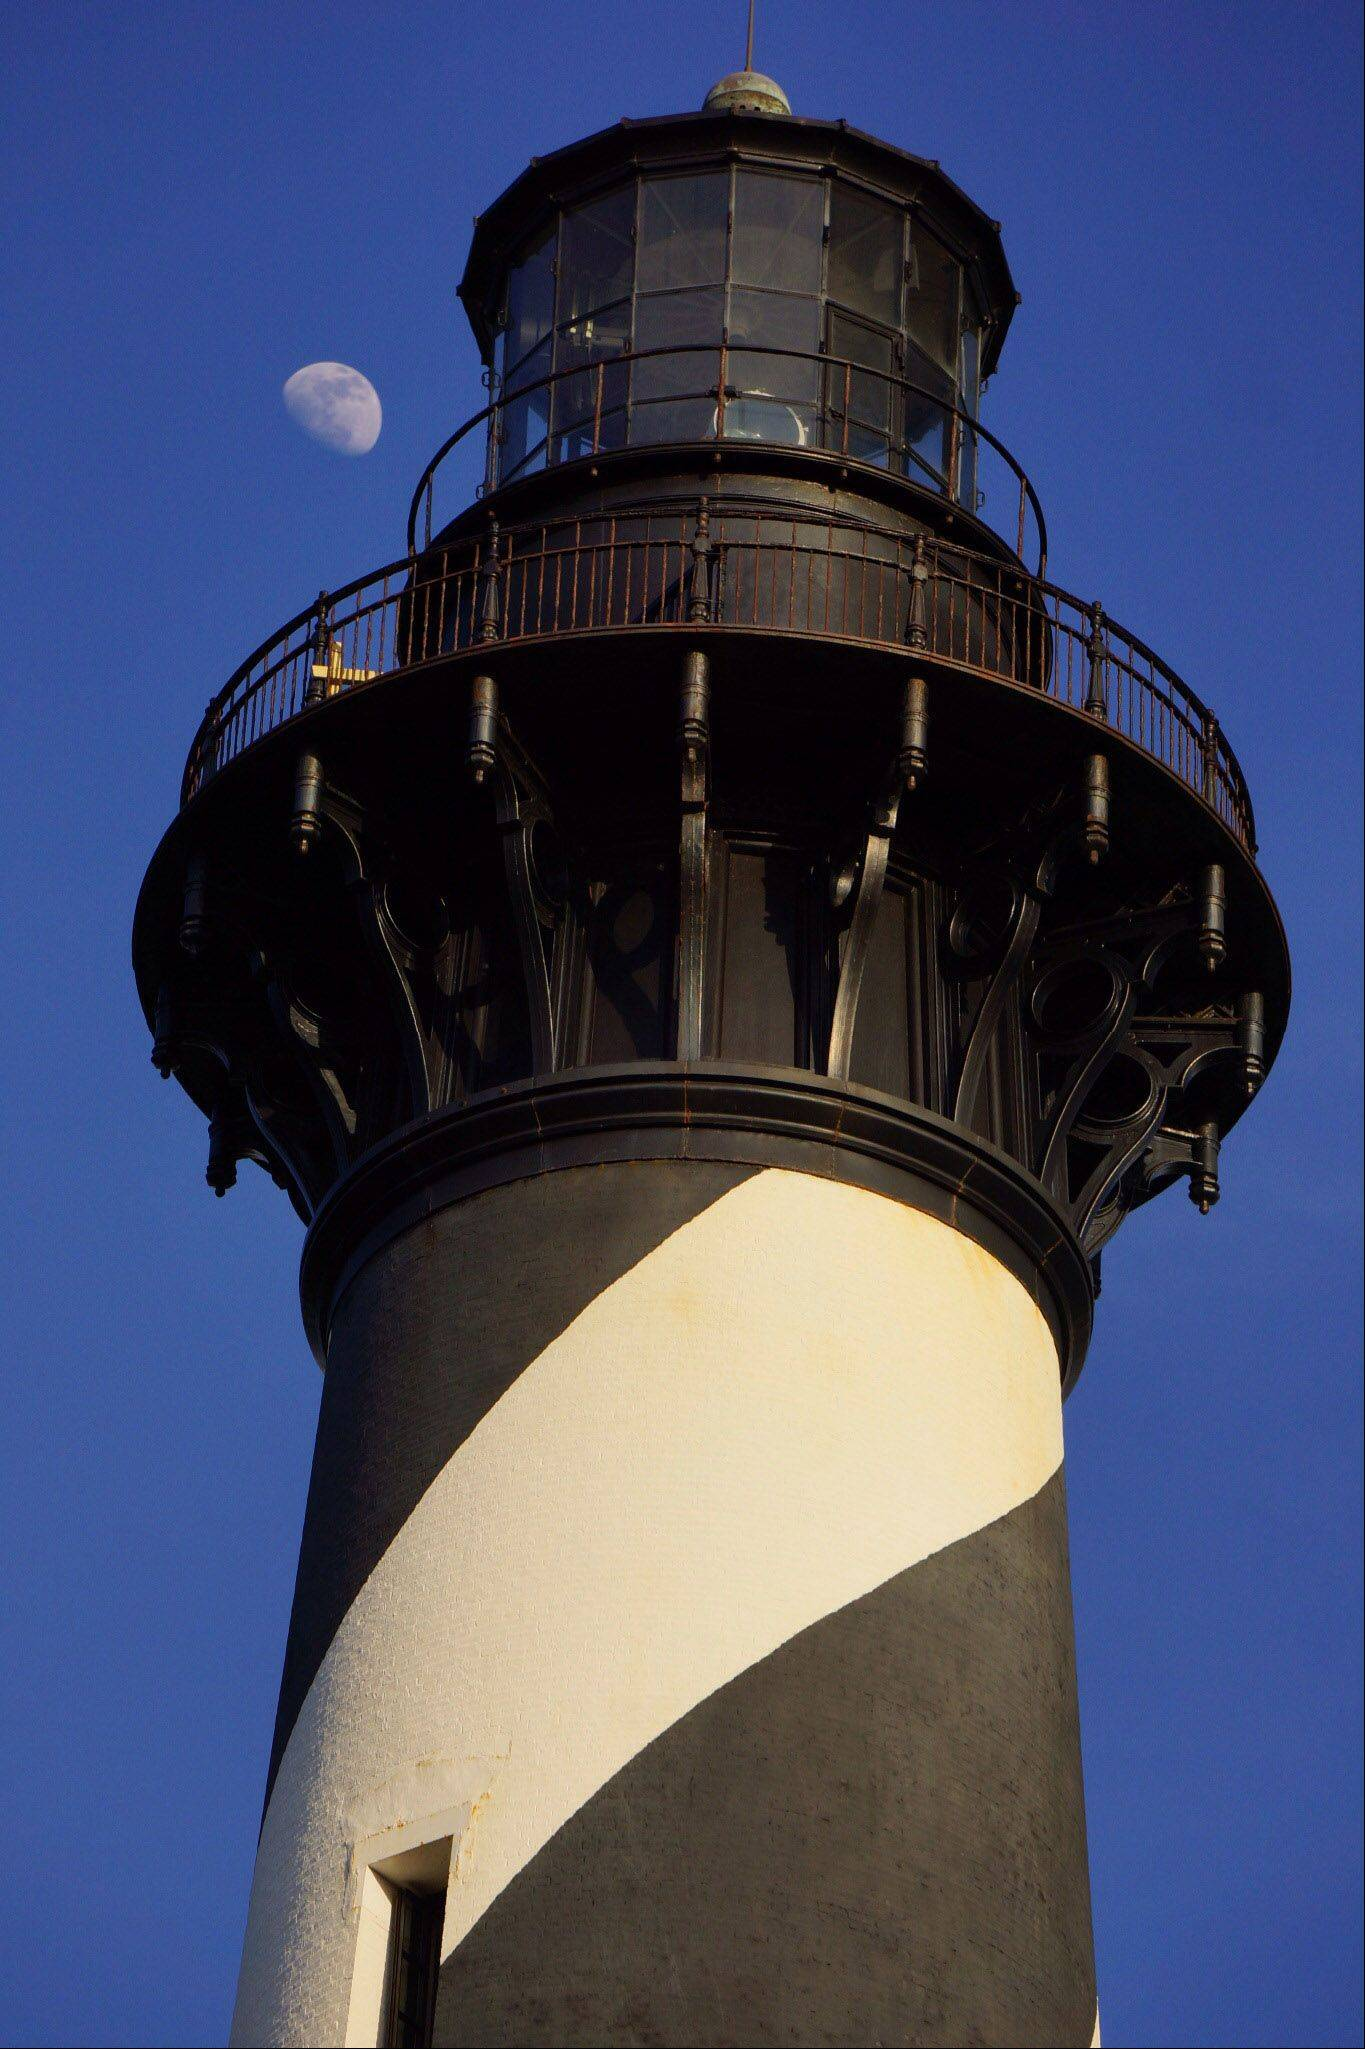 On our recent trip to The Outer Banks, North Carolina, this photo brought together two common sailor beacons: a half-moon rising behind the Cape Hatteras Lighthouse.